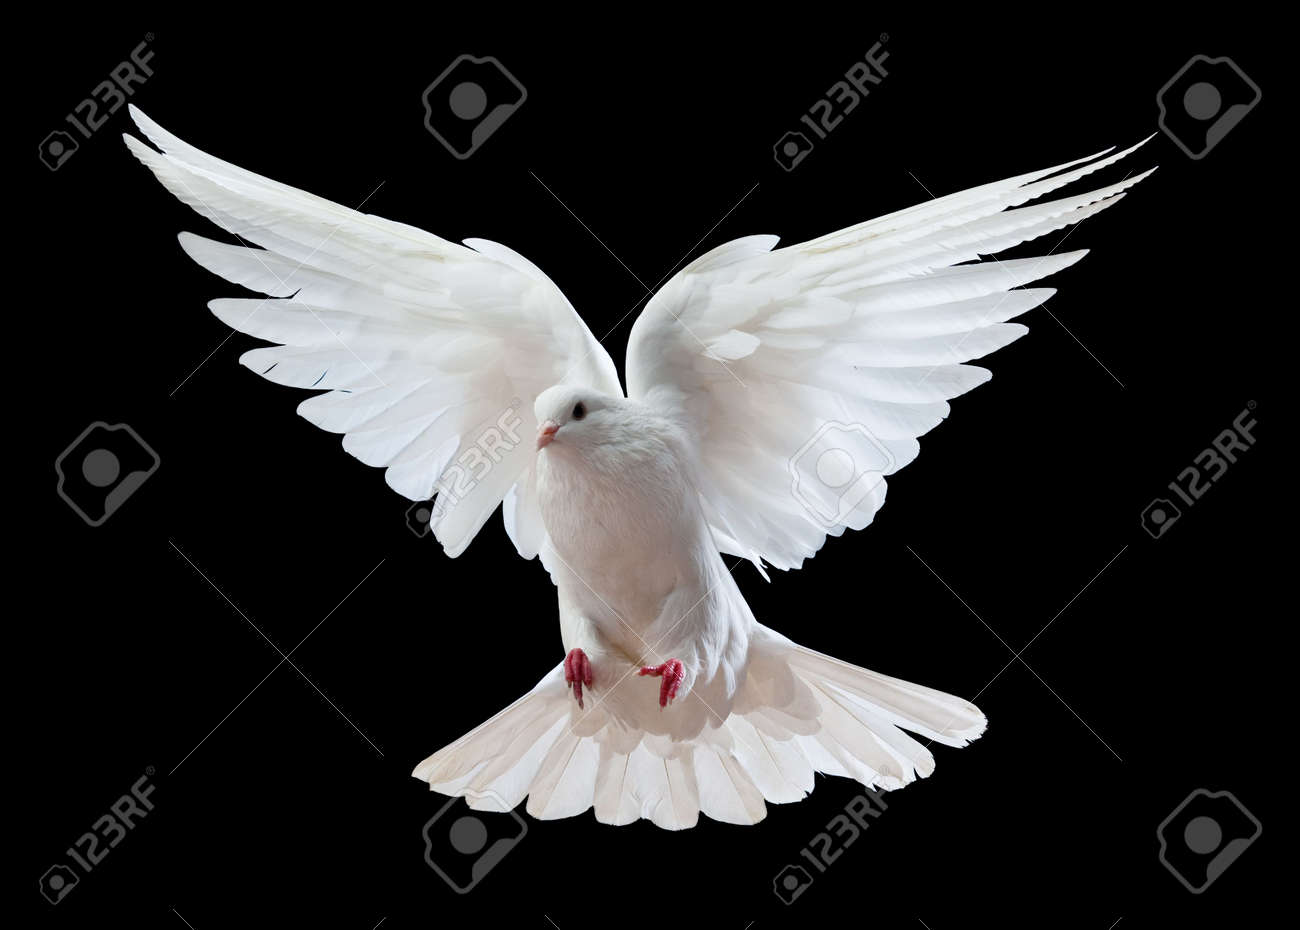 A free flying white dove isolated on a black background Stock Photo - 6518309